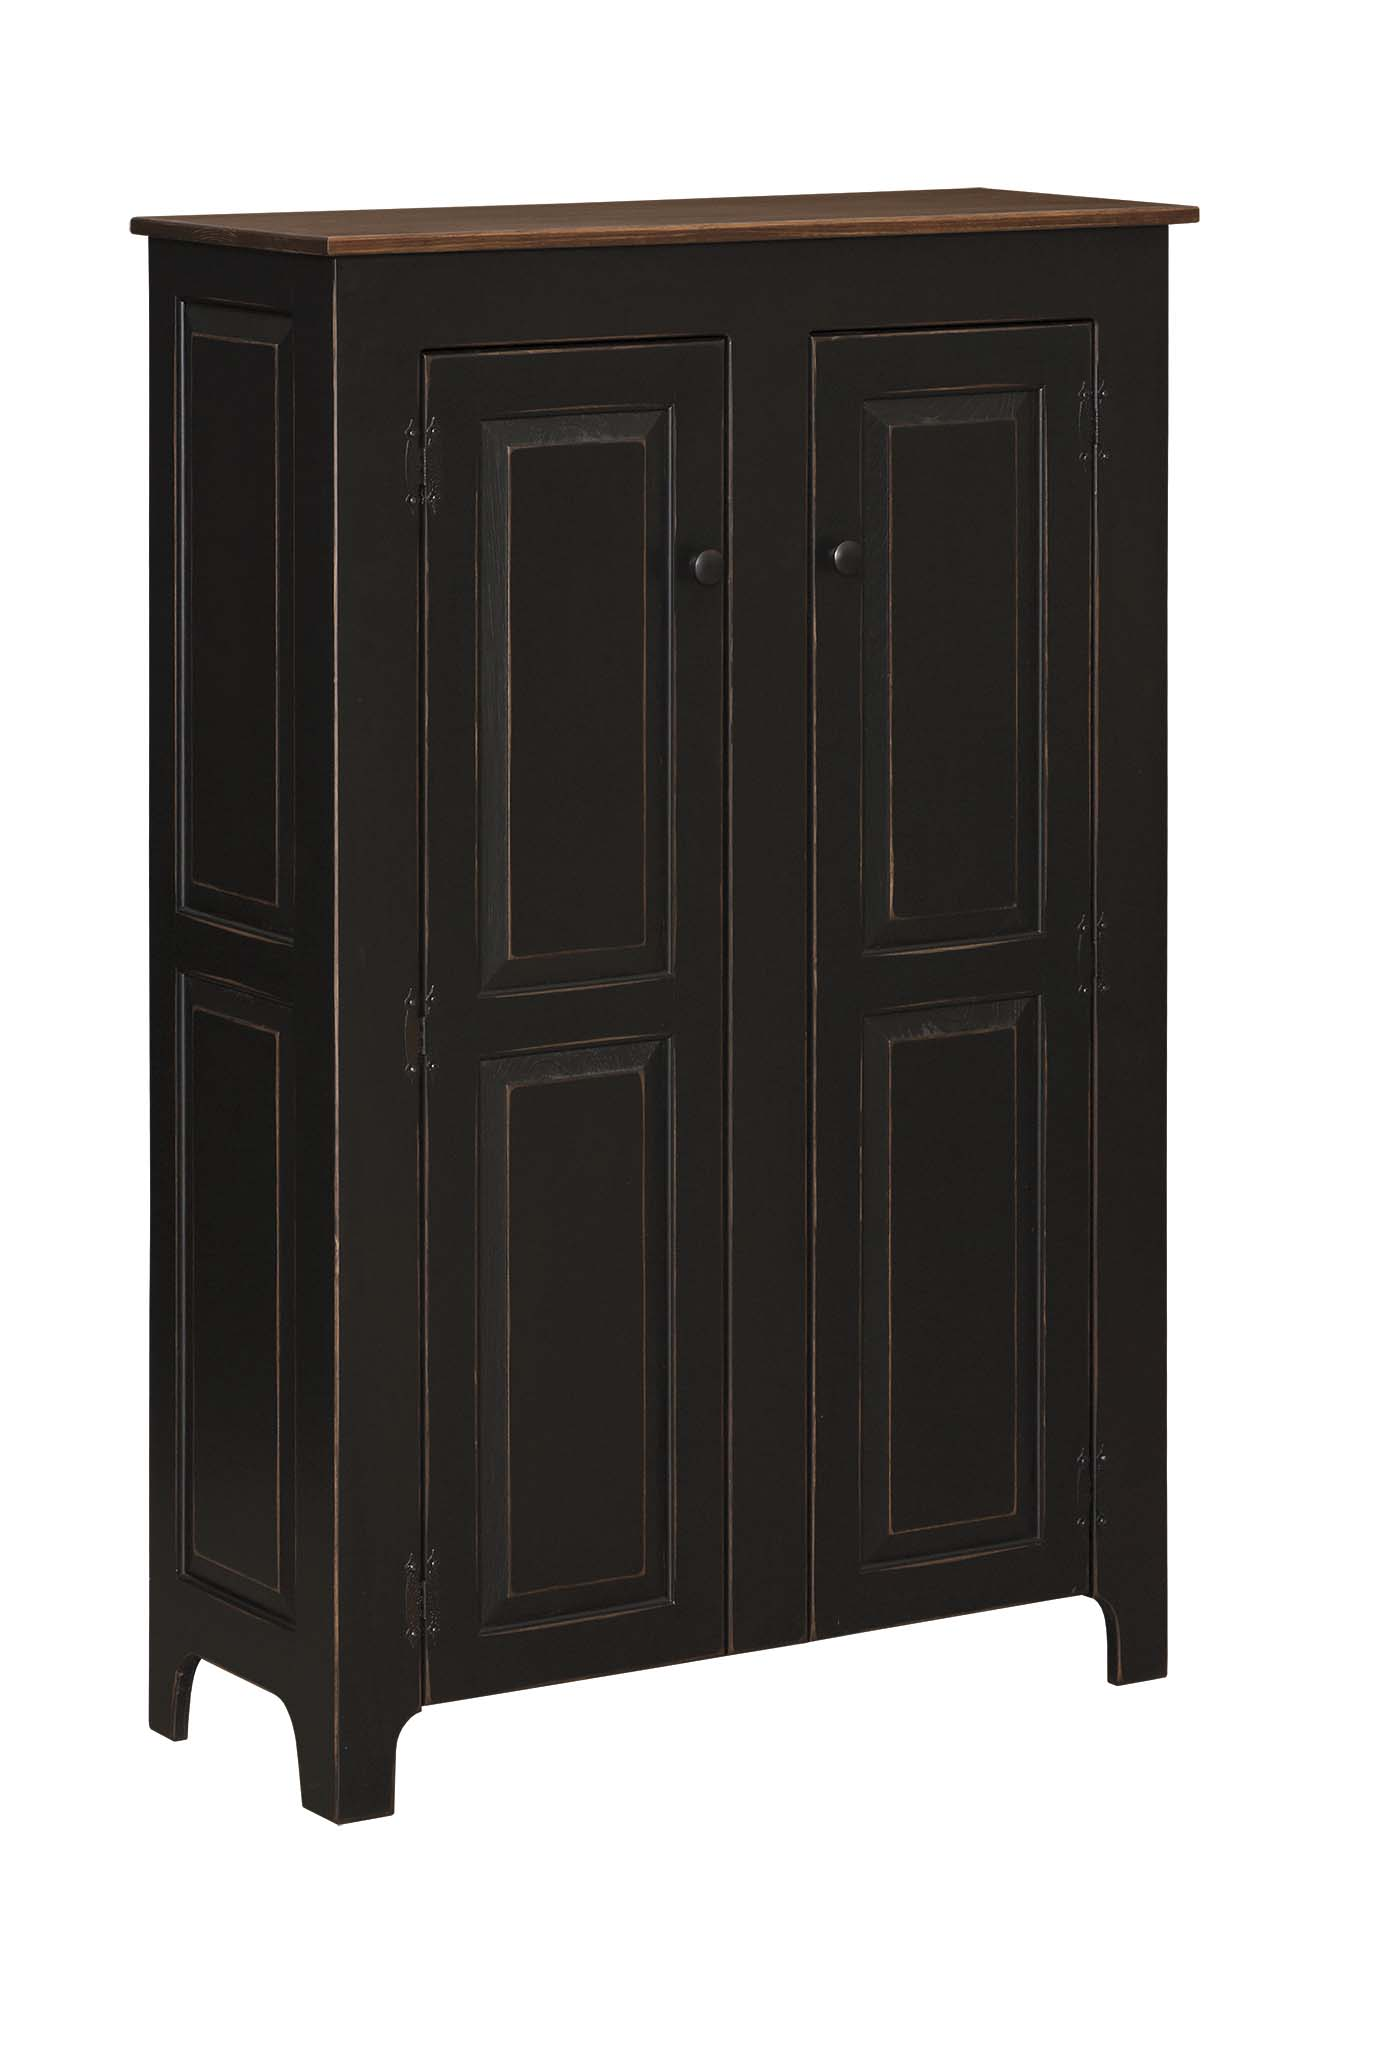 Jelly Cupboard Amish Furniture Connections Amish